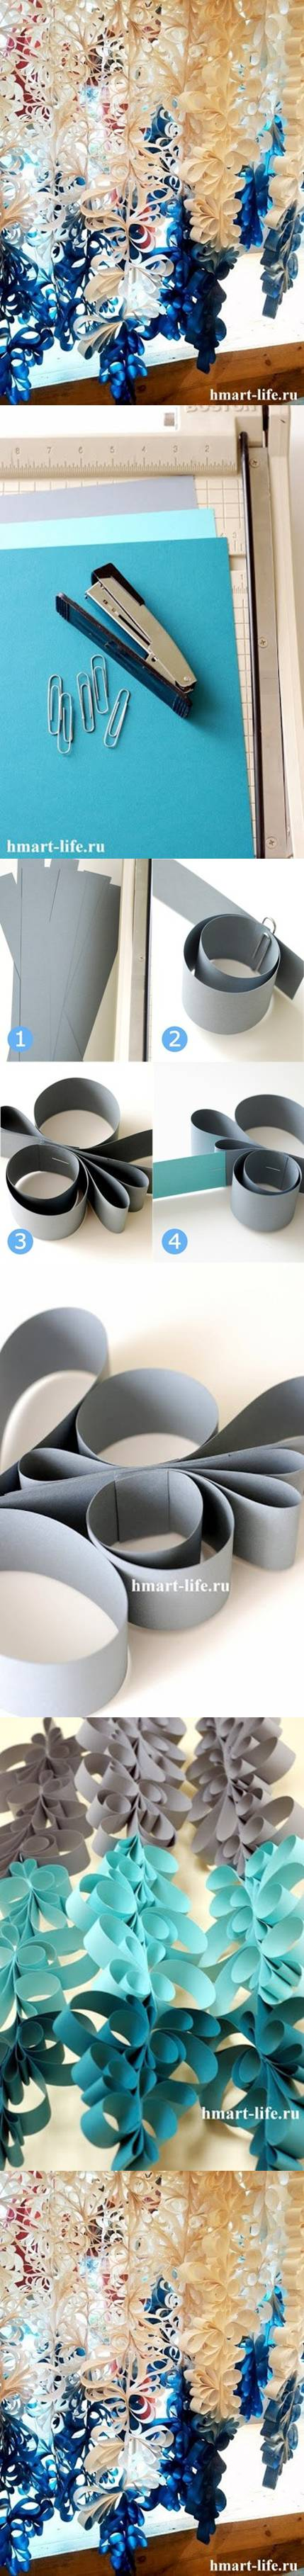 How to make Make Garlands DIY tutorial instructions